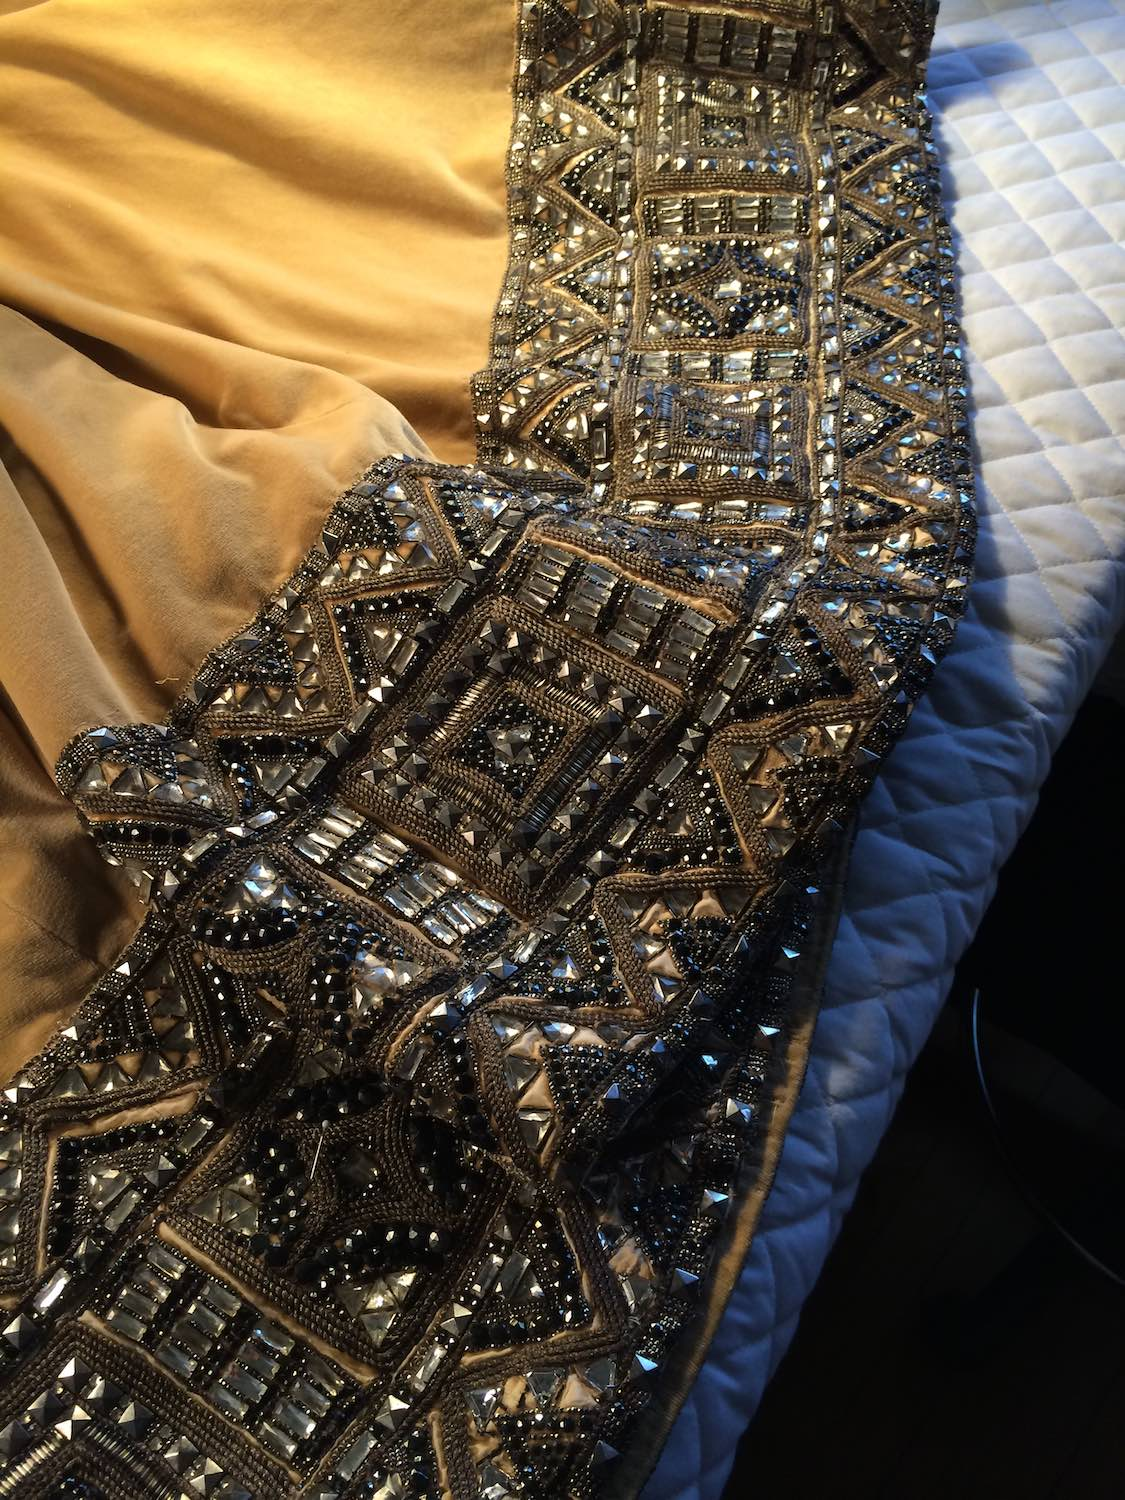 Here is a close-up of hem from Greta Garbo's costume. The gown weighed 65 pounds. This gown is a true testament to what a costume designer's team can create.